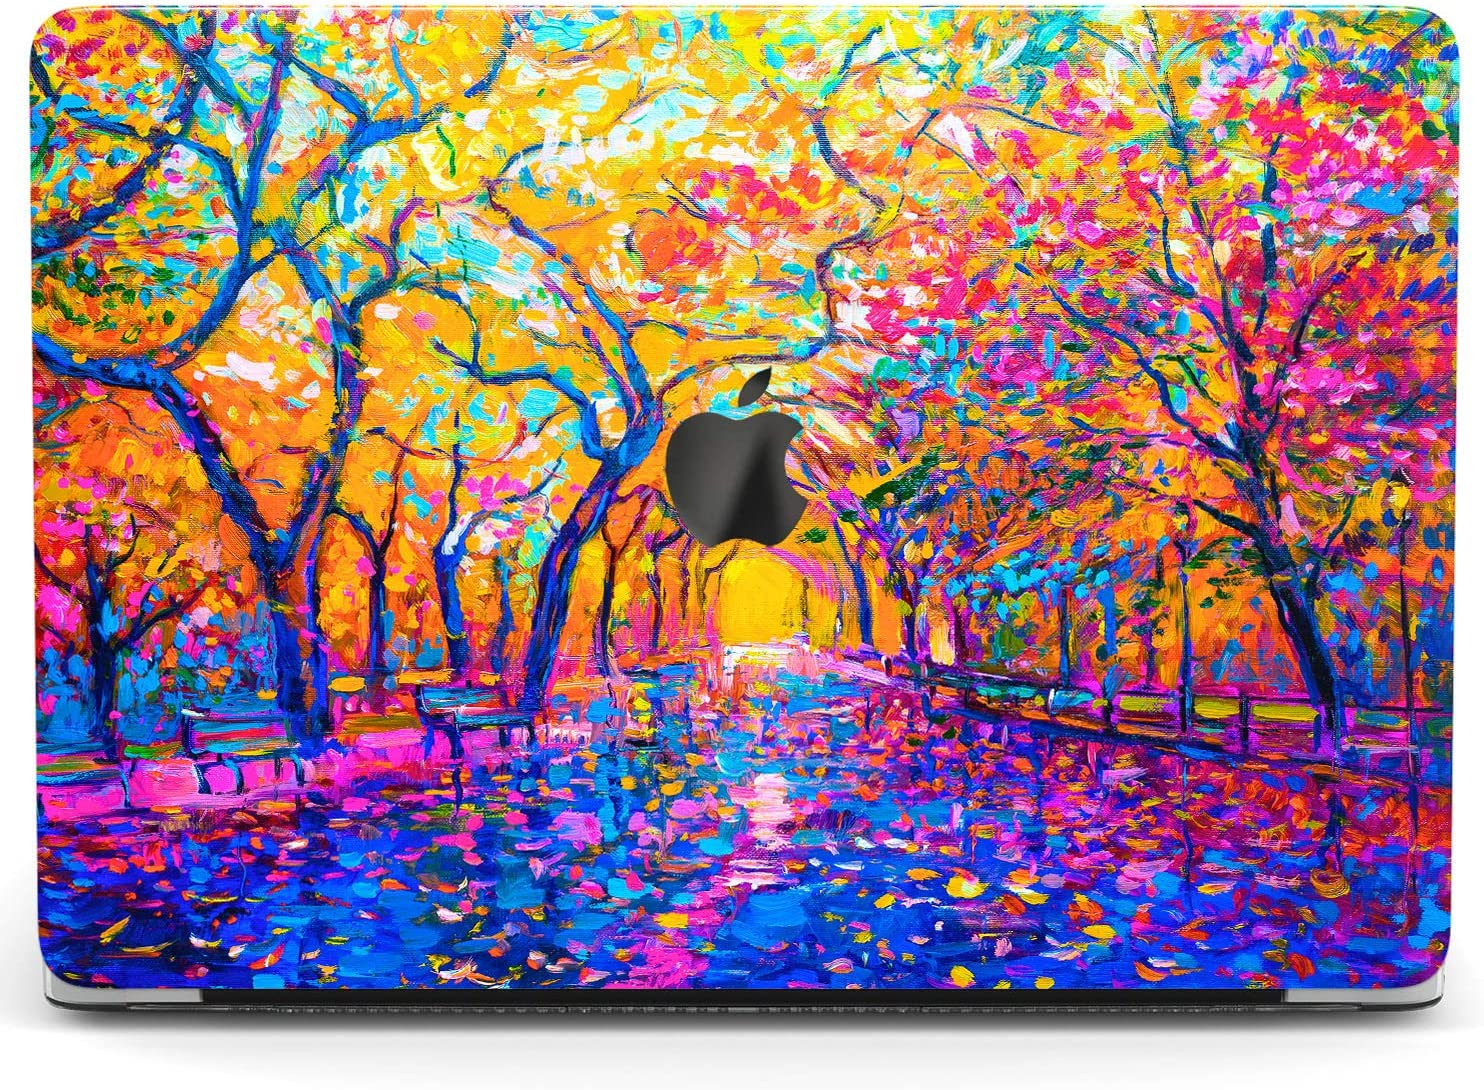 Wonder Wild Case For MacBook Air 13 inch Pro 15 2019 2018 Retina 12 11 Apple Hard Mac Protective Cover Touch Bar 2017 2016 2020 Plastic Laptop Print Watercolor Landscape Painting Bright Artwork Nature